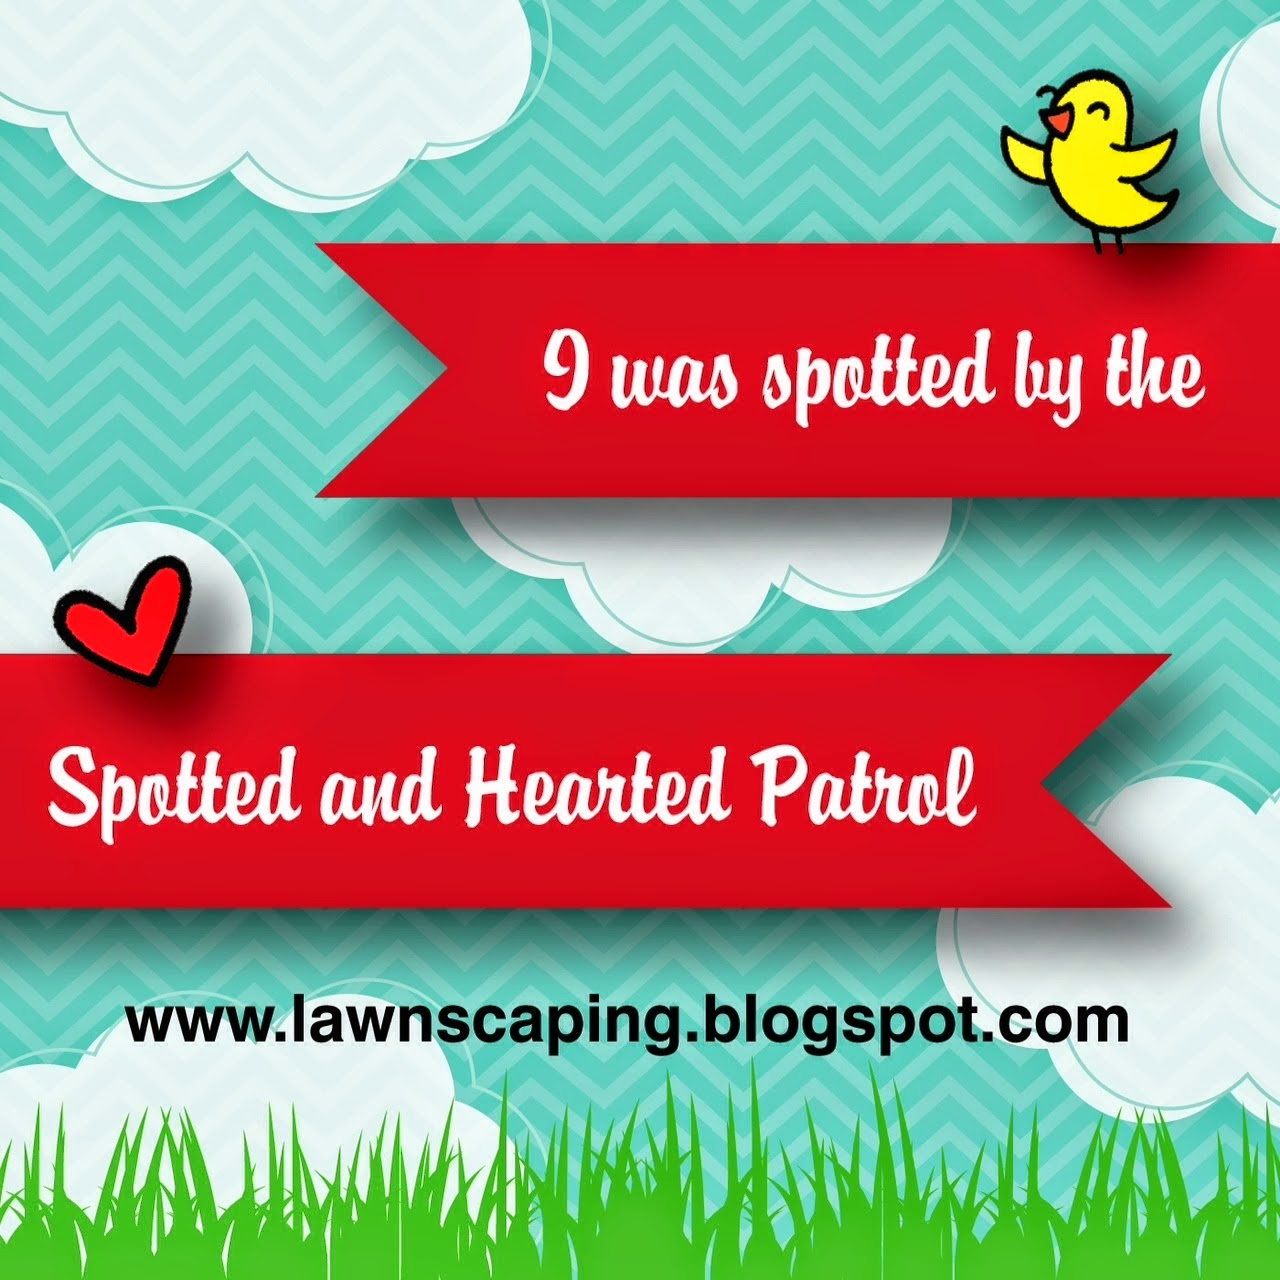 Spotted and Hearted Oct 2014